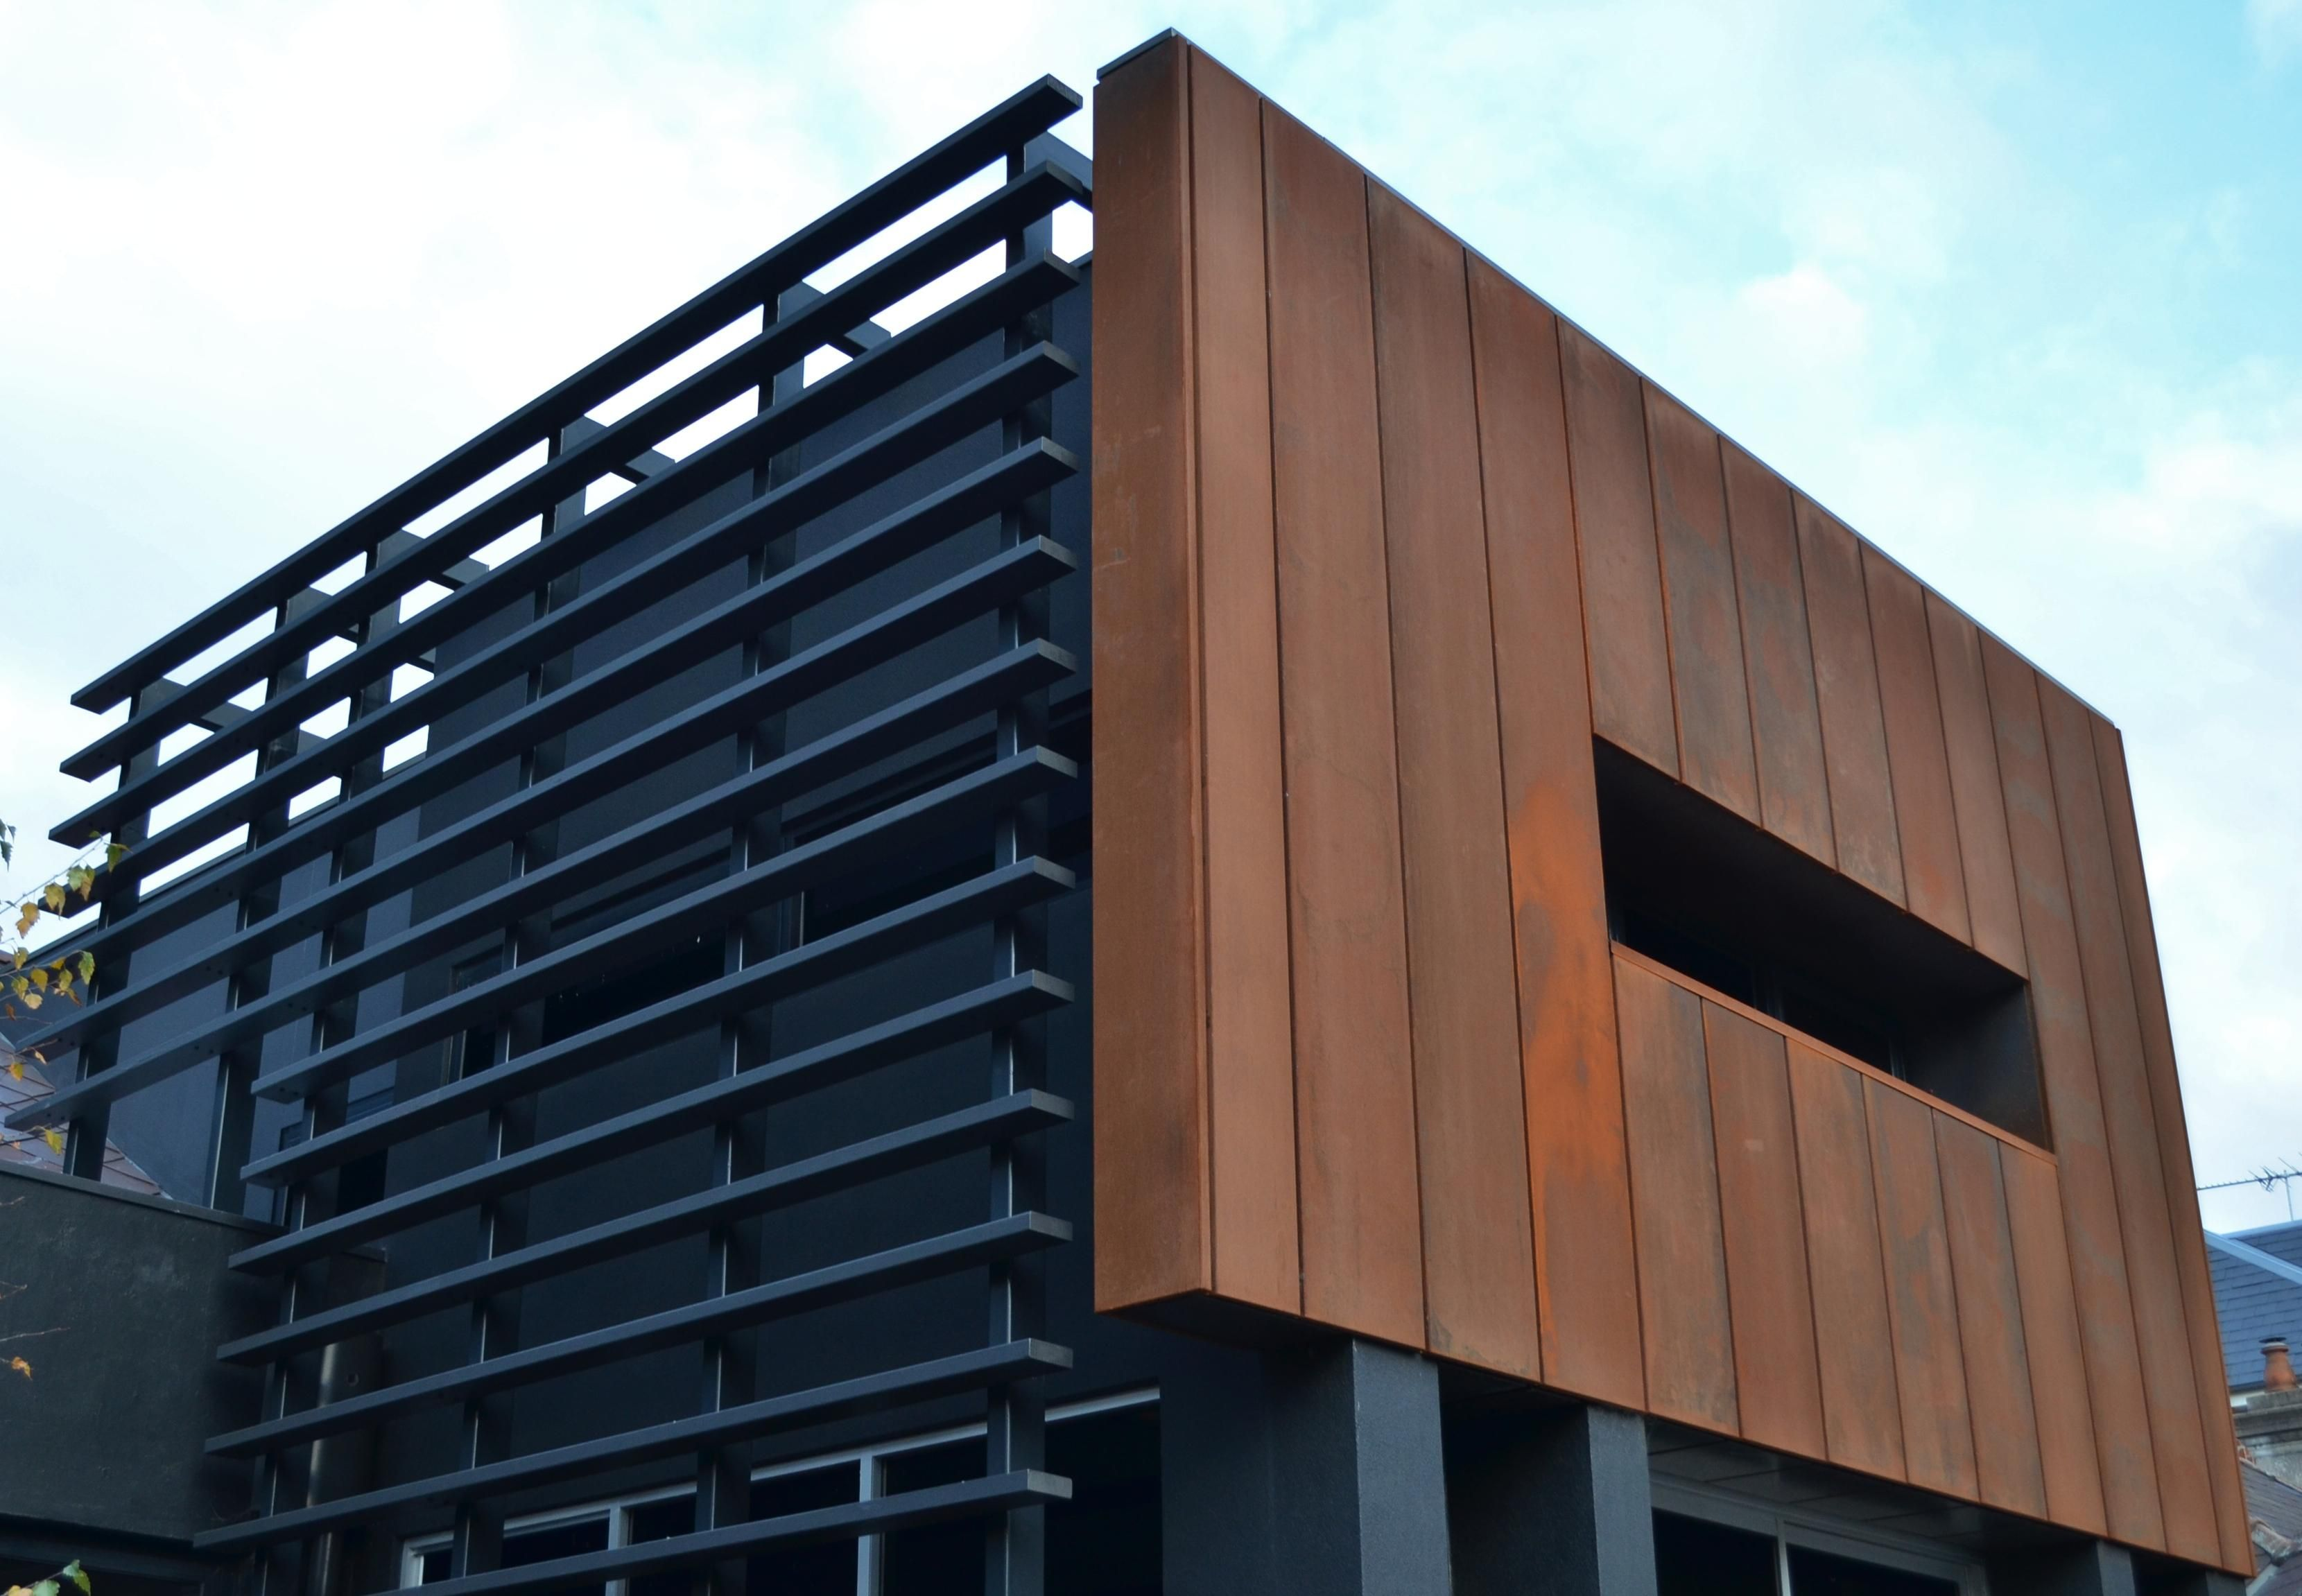 Cassette panel copper design cladding architecture details pinterest cladding facades Materials for exterior walls